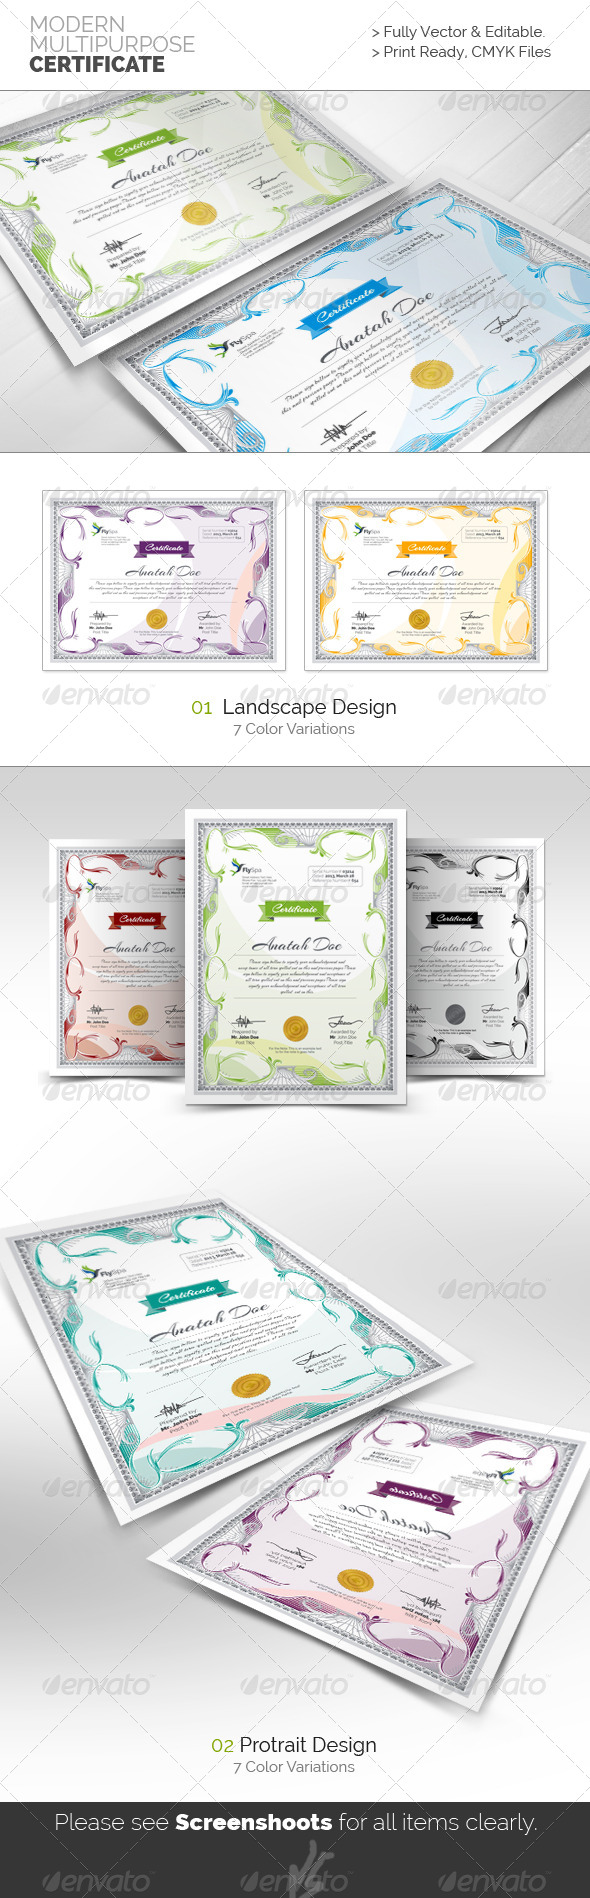 GraphicRiver Modern Multipurpose Certificates v2 5422490